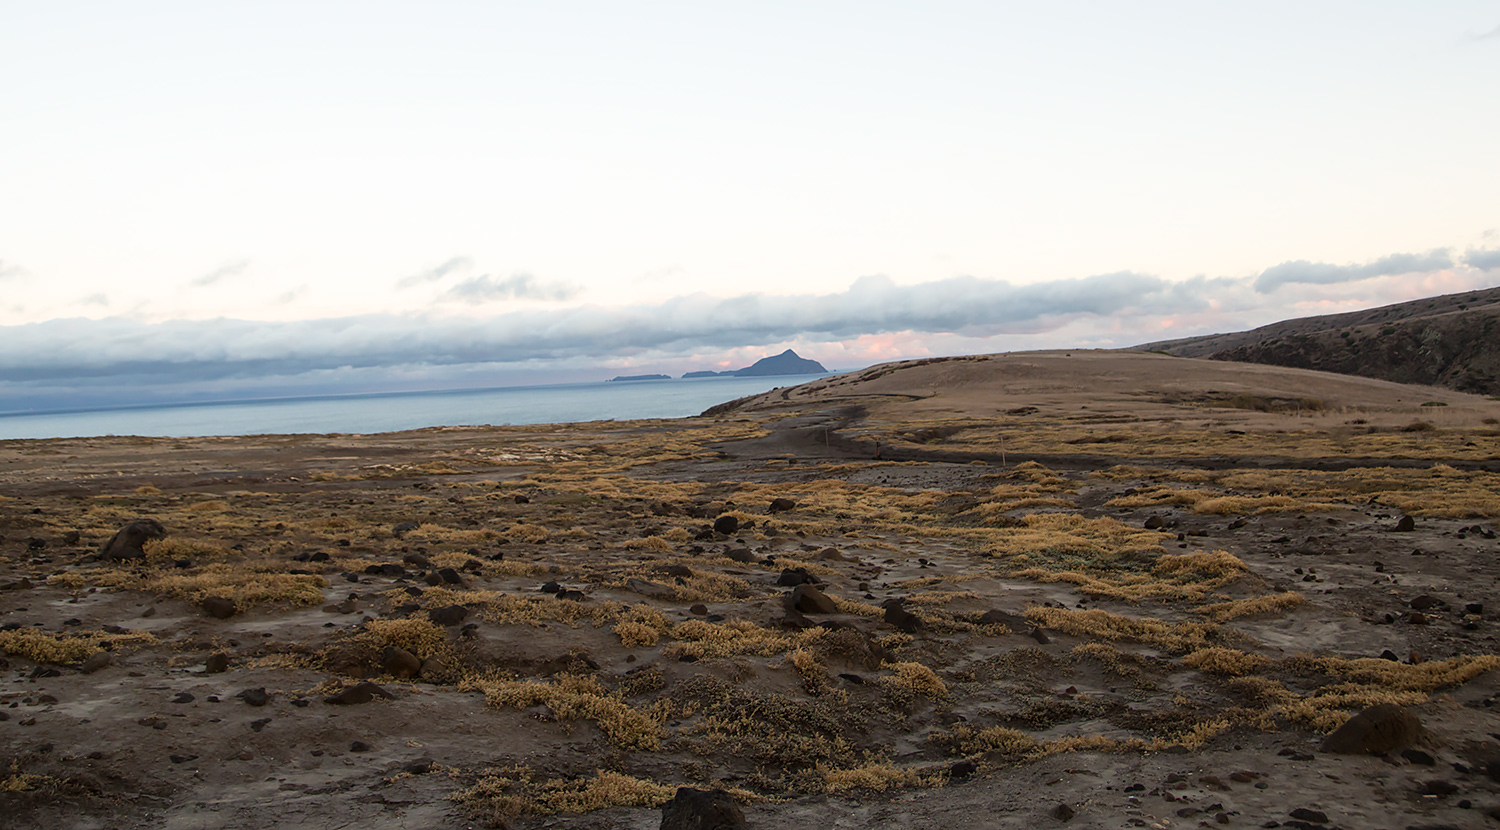 View on Anacapa Island in the distance